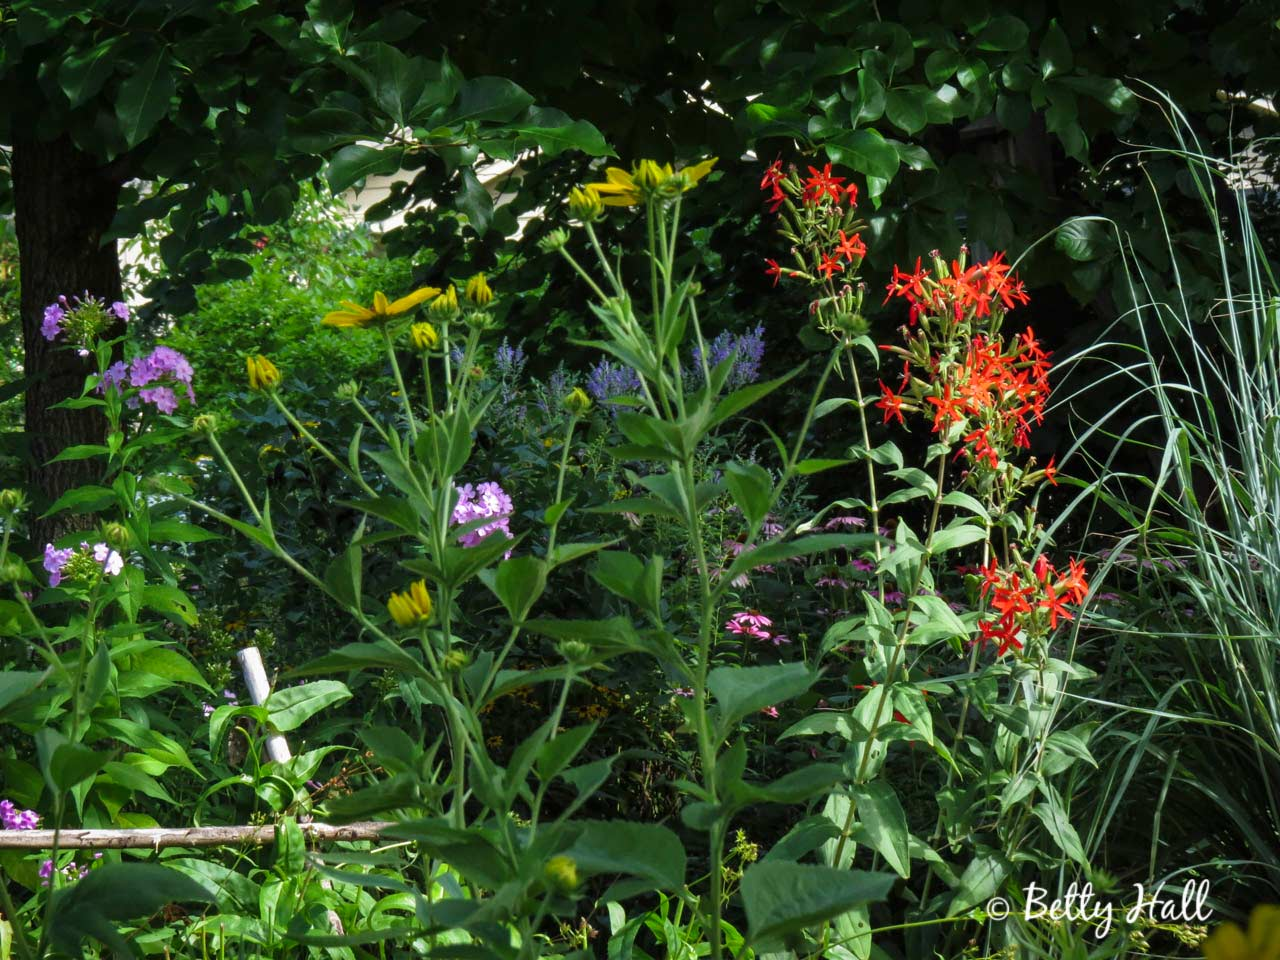 Royal Catchfly and Midsummer Blooms